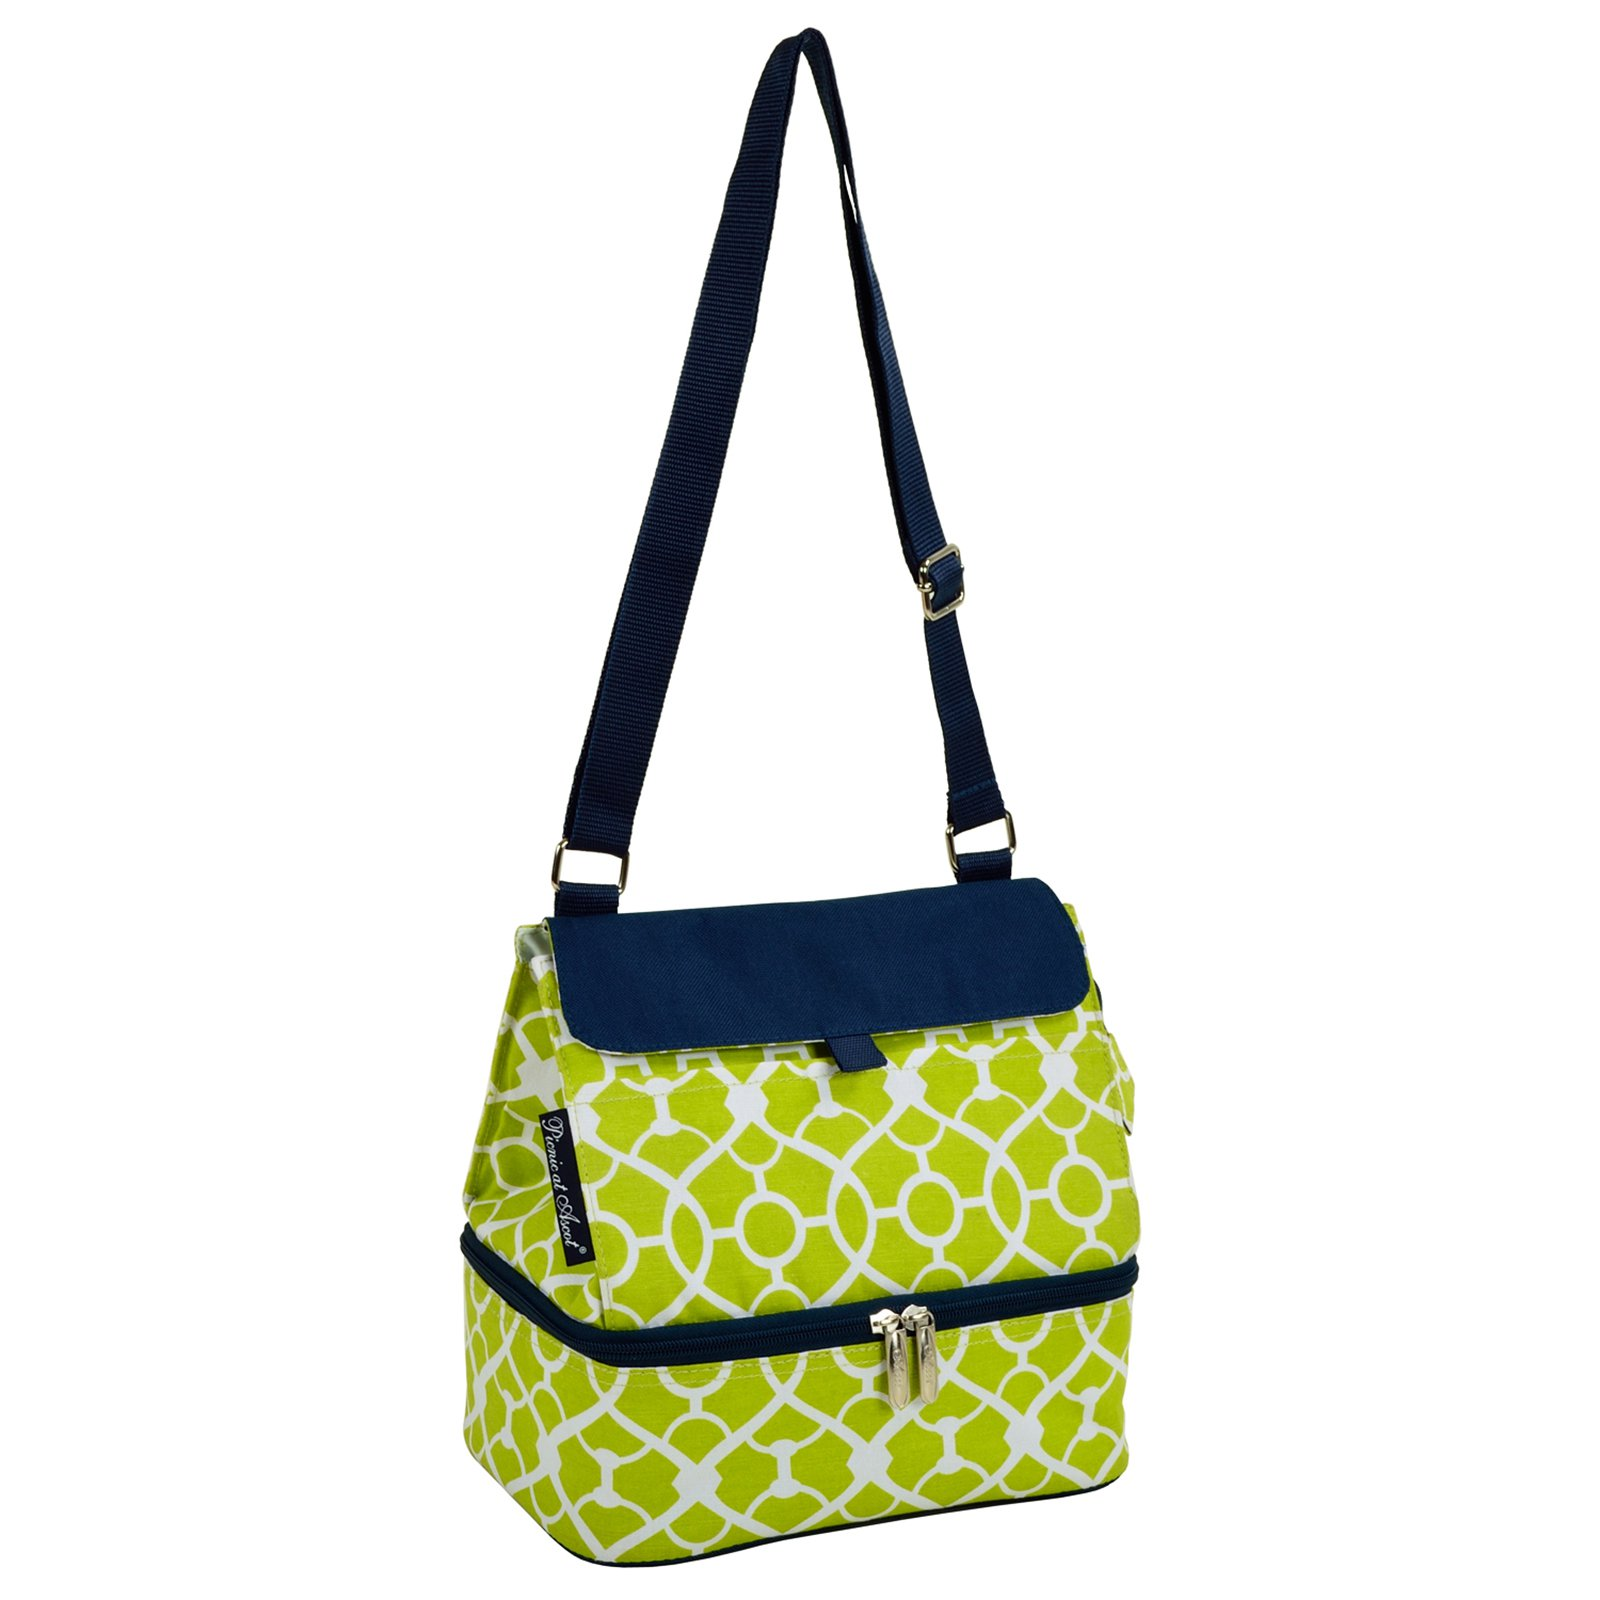 """Picnic at Ascot Lunch Cooler  10"""" x 9.75"""" x 6.5"""""""